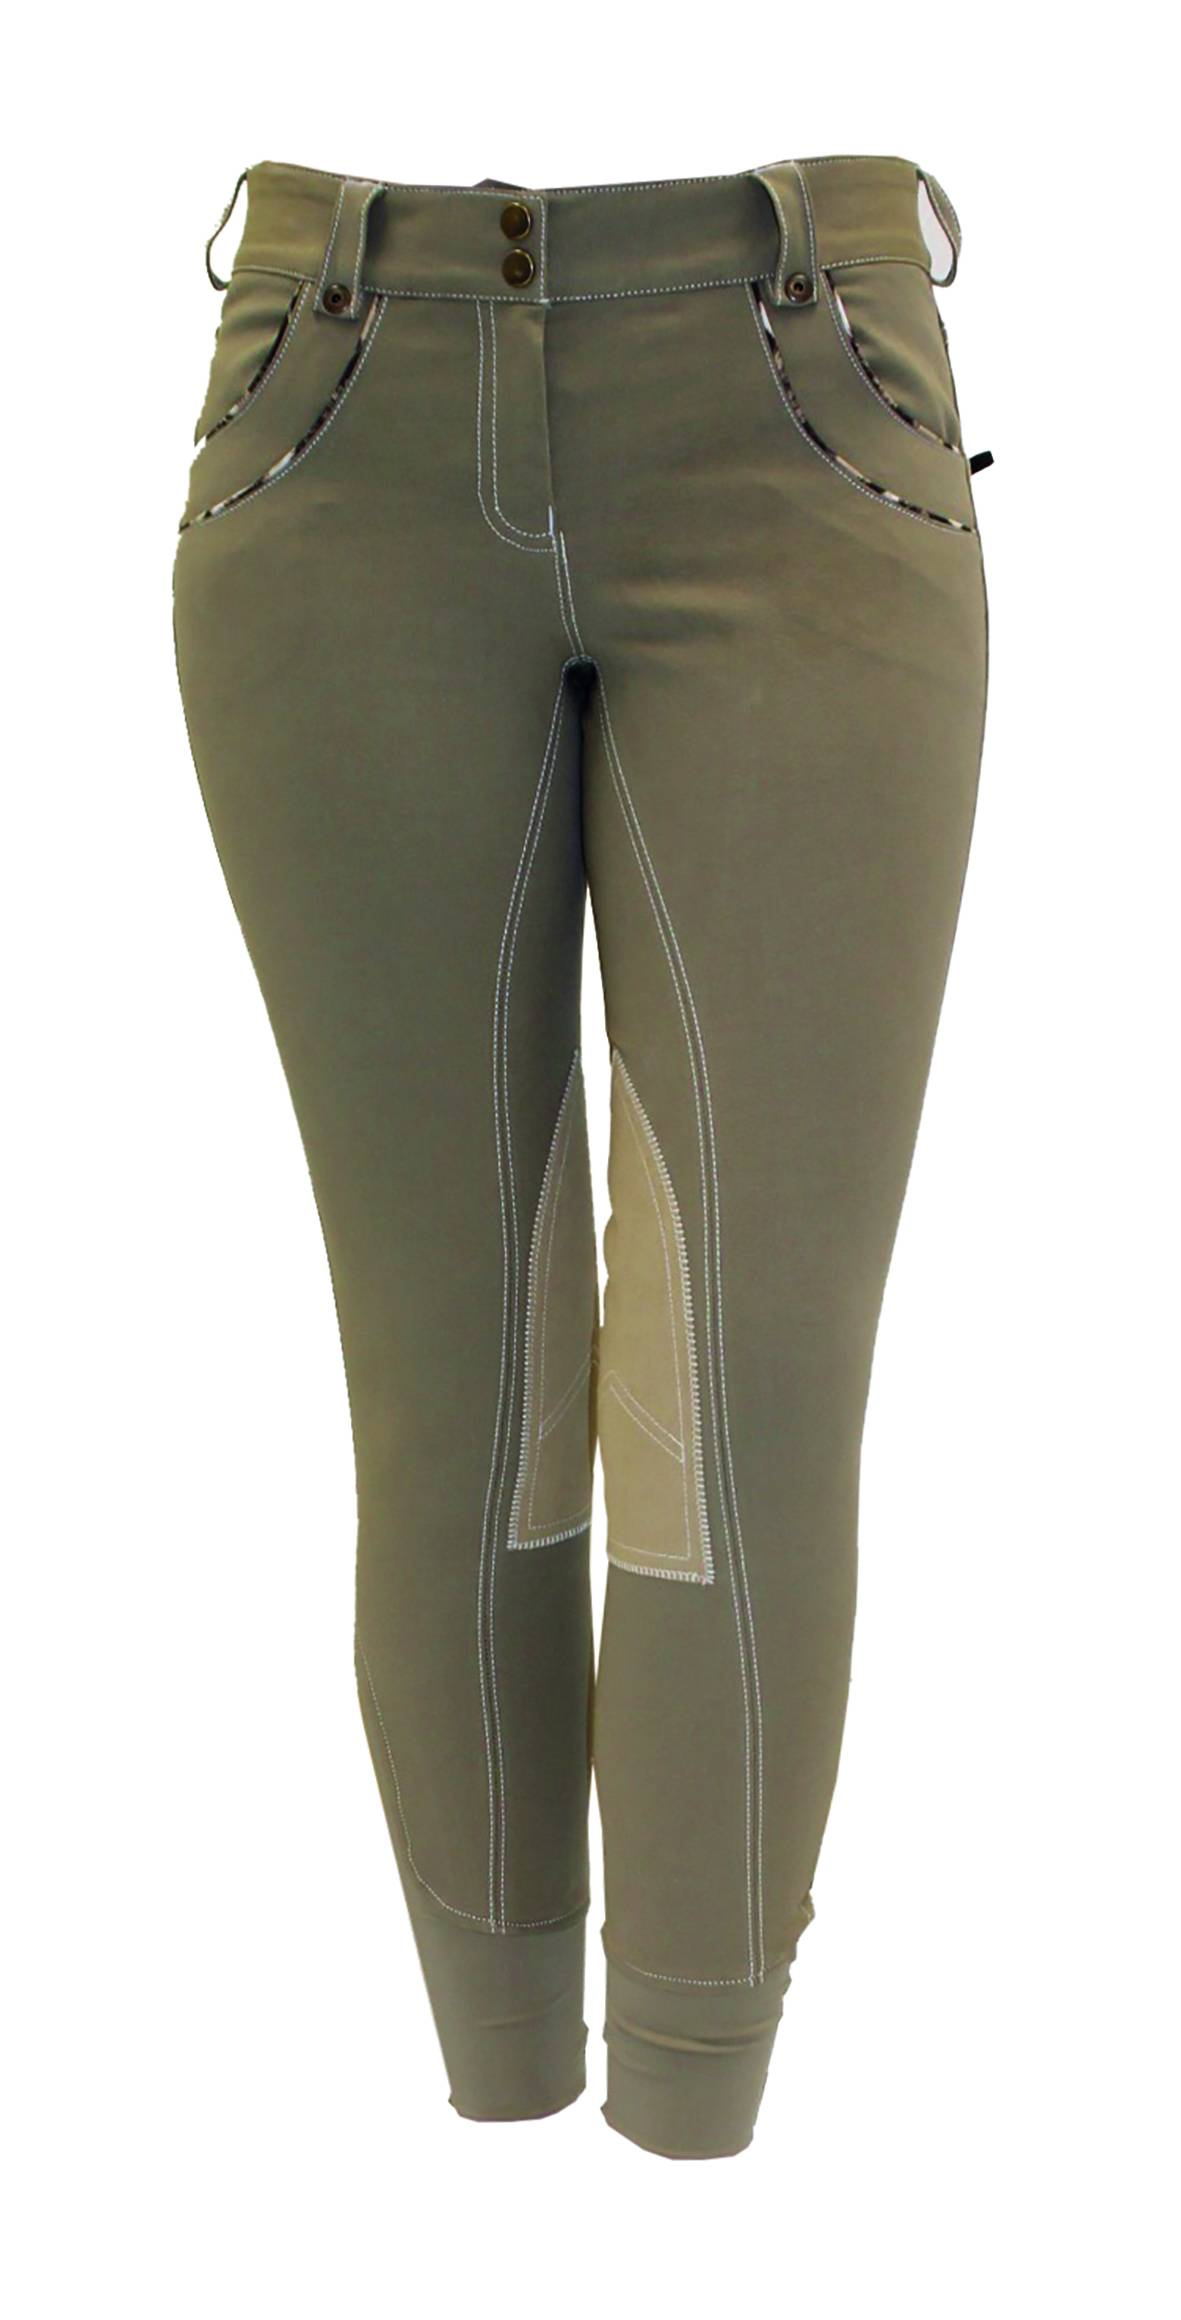 Horseware Polo Nina Safari Breeches - Ladies, Knee Patch